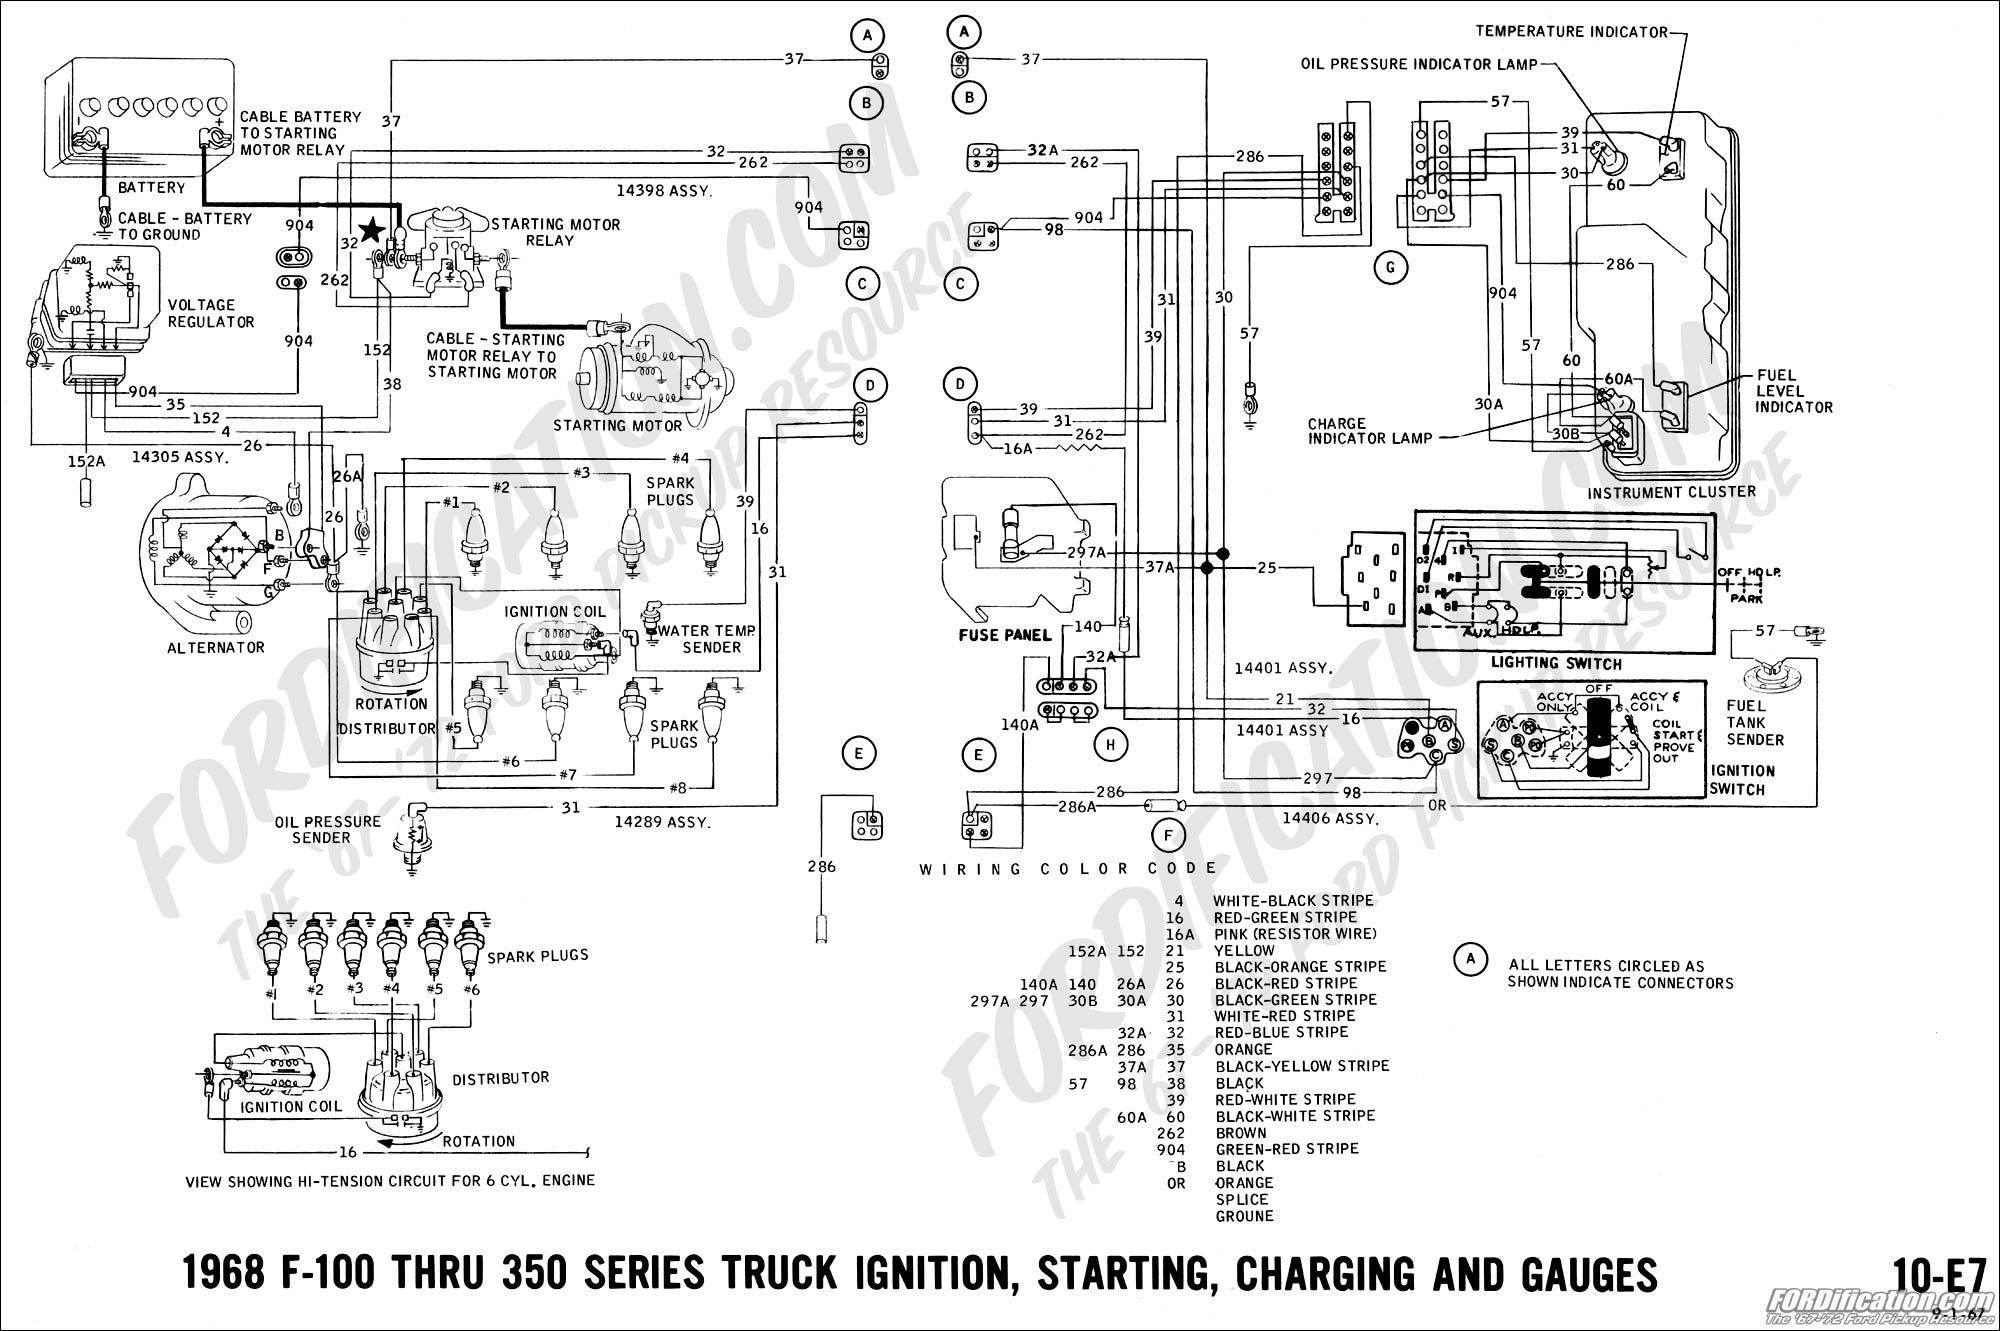 1968 F-100 thru F-350 ignition, starting, charging and gauges (2 of ...